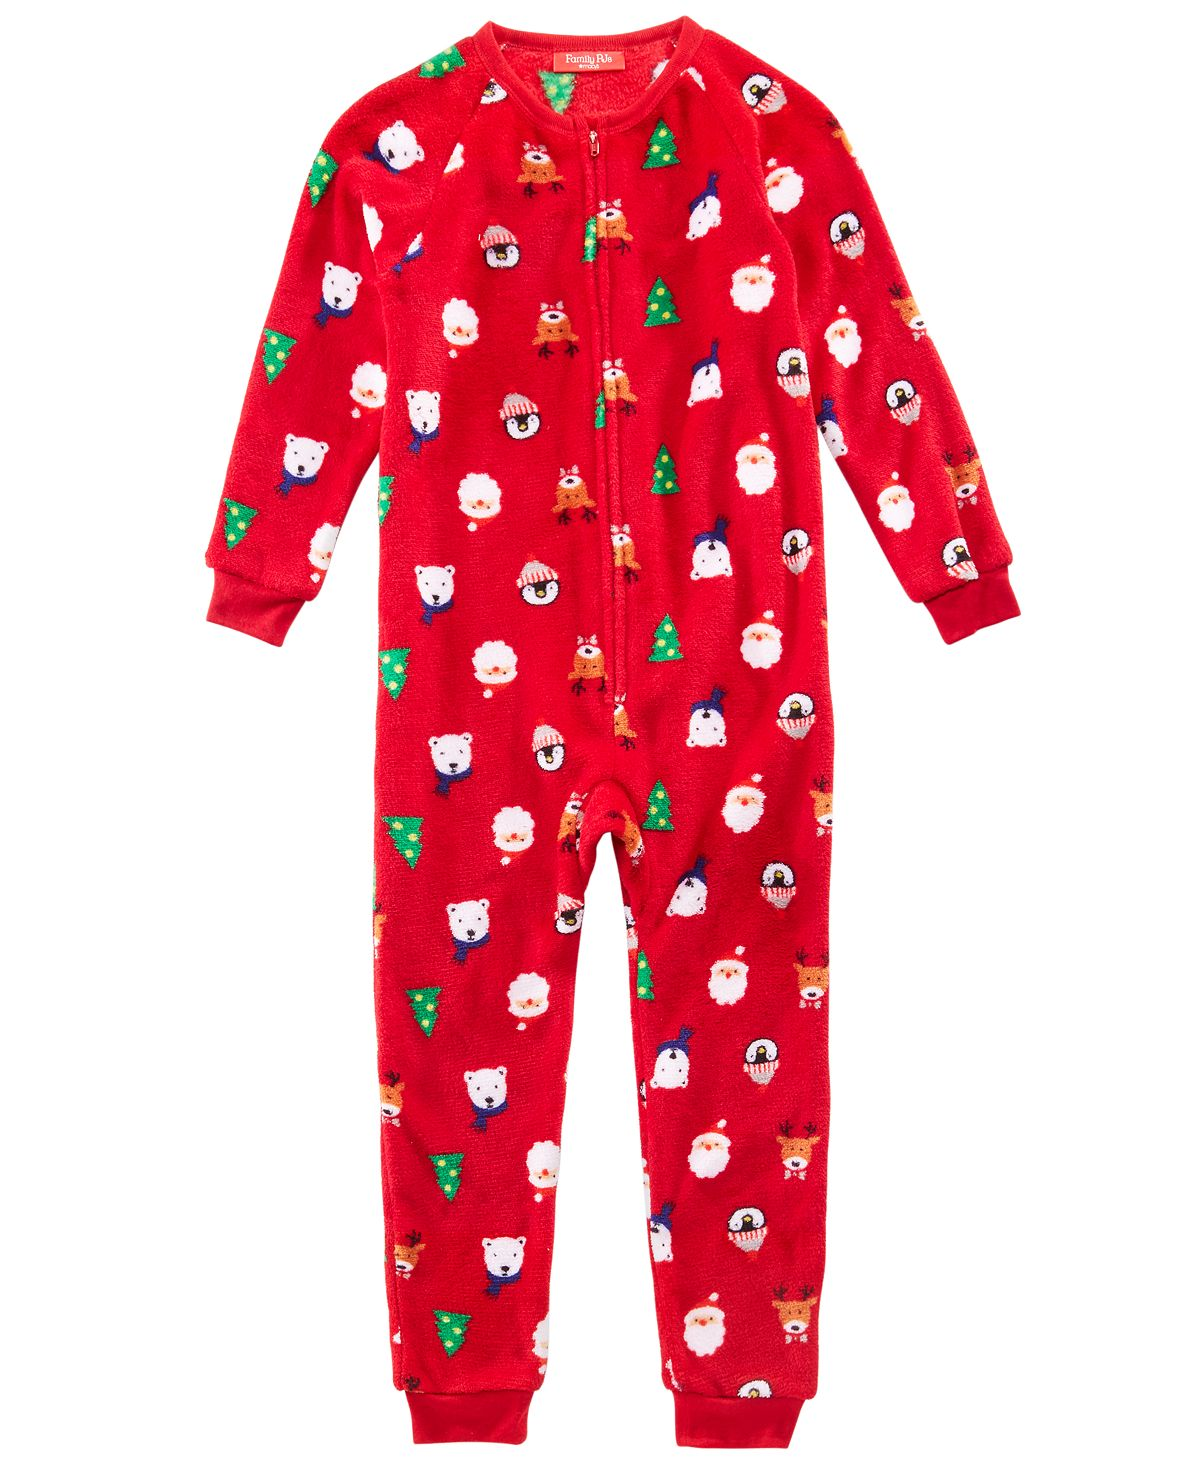 Matching Family Pajamas Kids Santa And Friends Pajamas